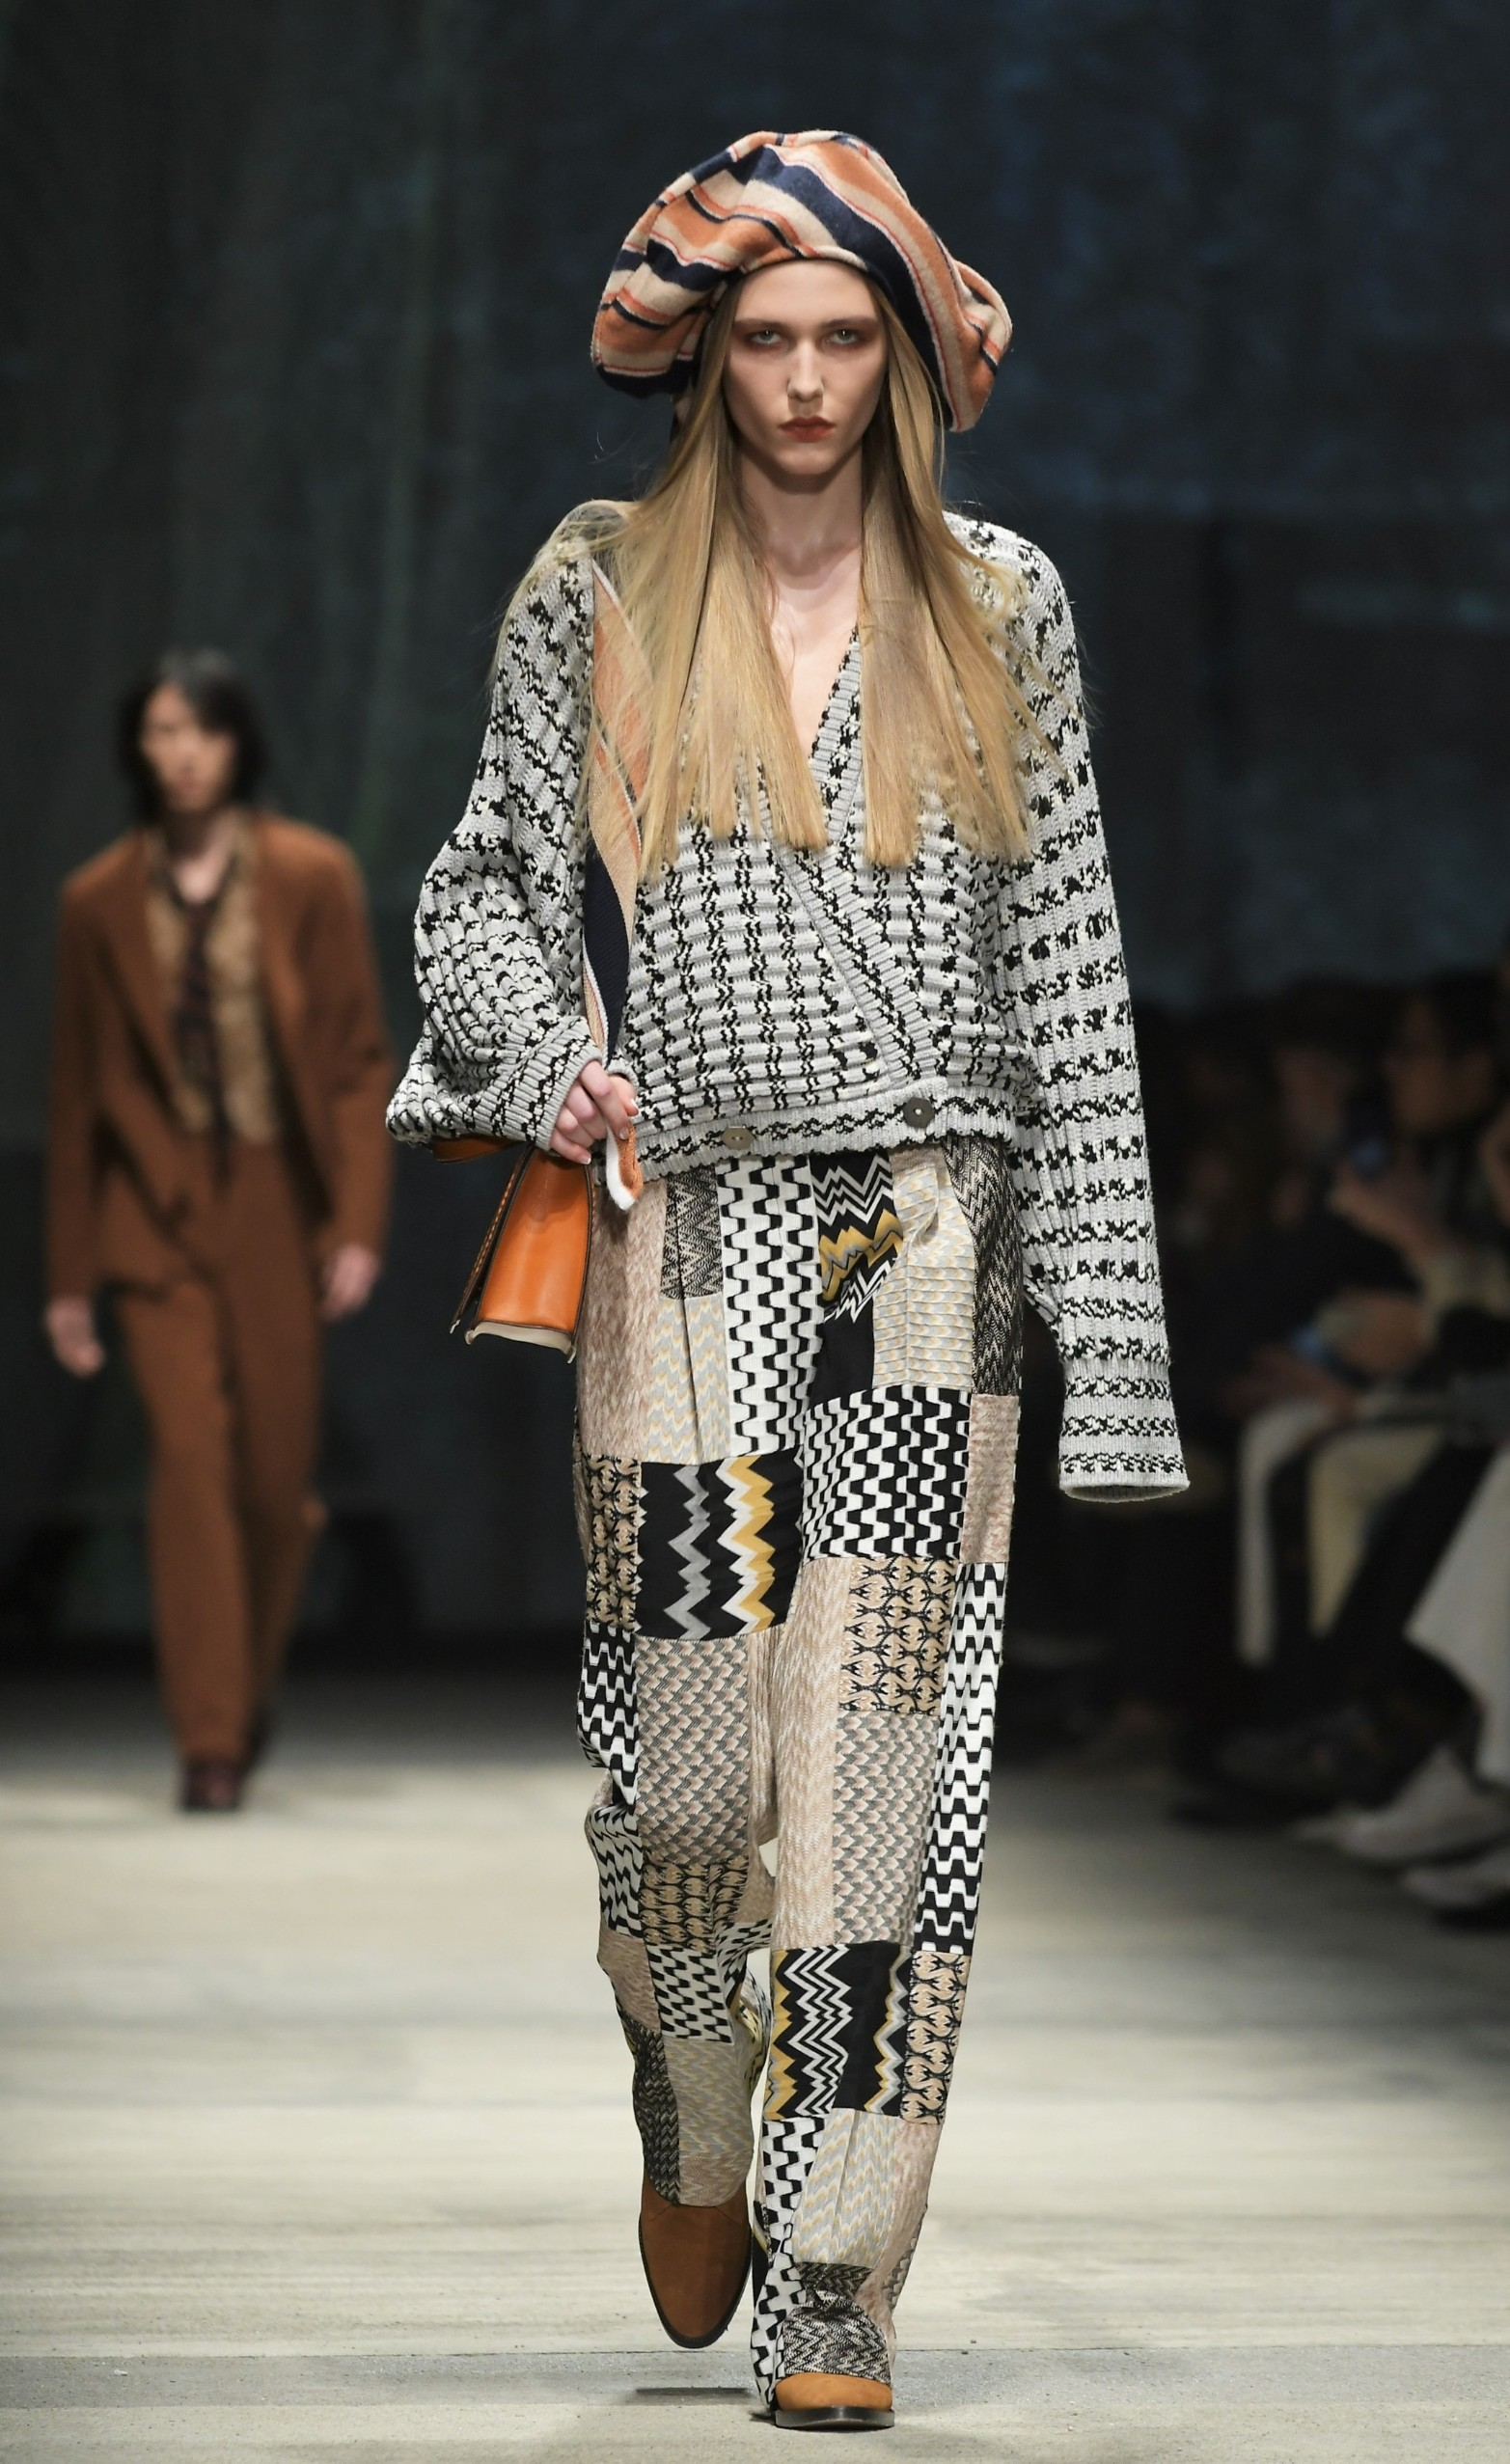 2/23/2020 - Milan, Italy MFW MISSONI photocall and show MILANO FASHION WEEK woman Fall-Winter 2020-21 In the photo: MISSONI show, Image: 500368131, License: Rights-managed, Restrictions: *** NO SALES UK AND ITALY***, Model Release: no, Credit line: IPA / ddp USA / Profimedia